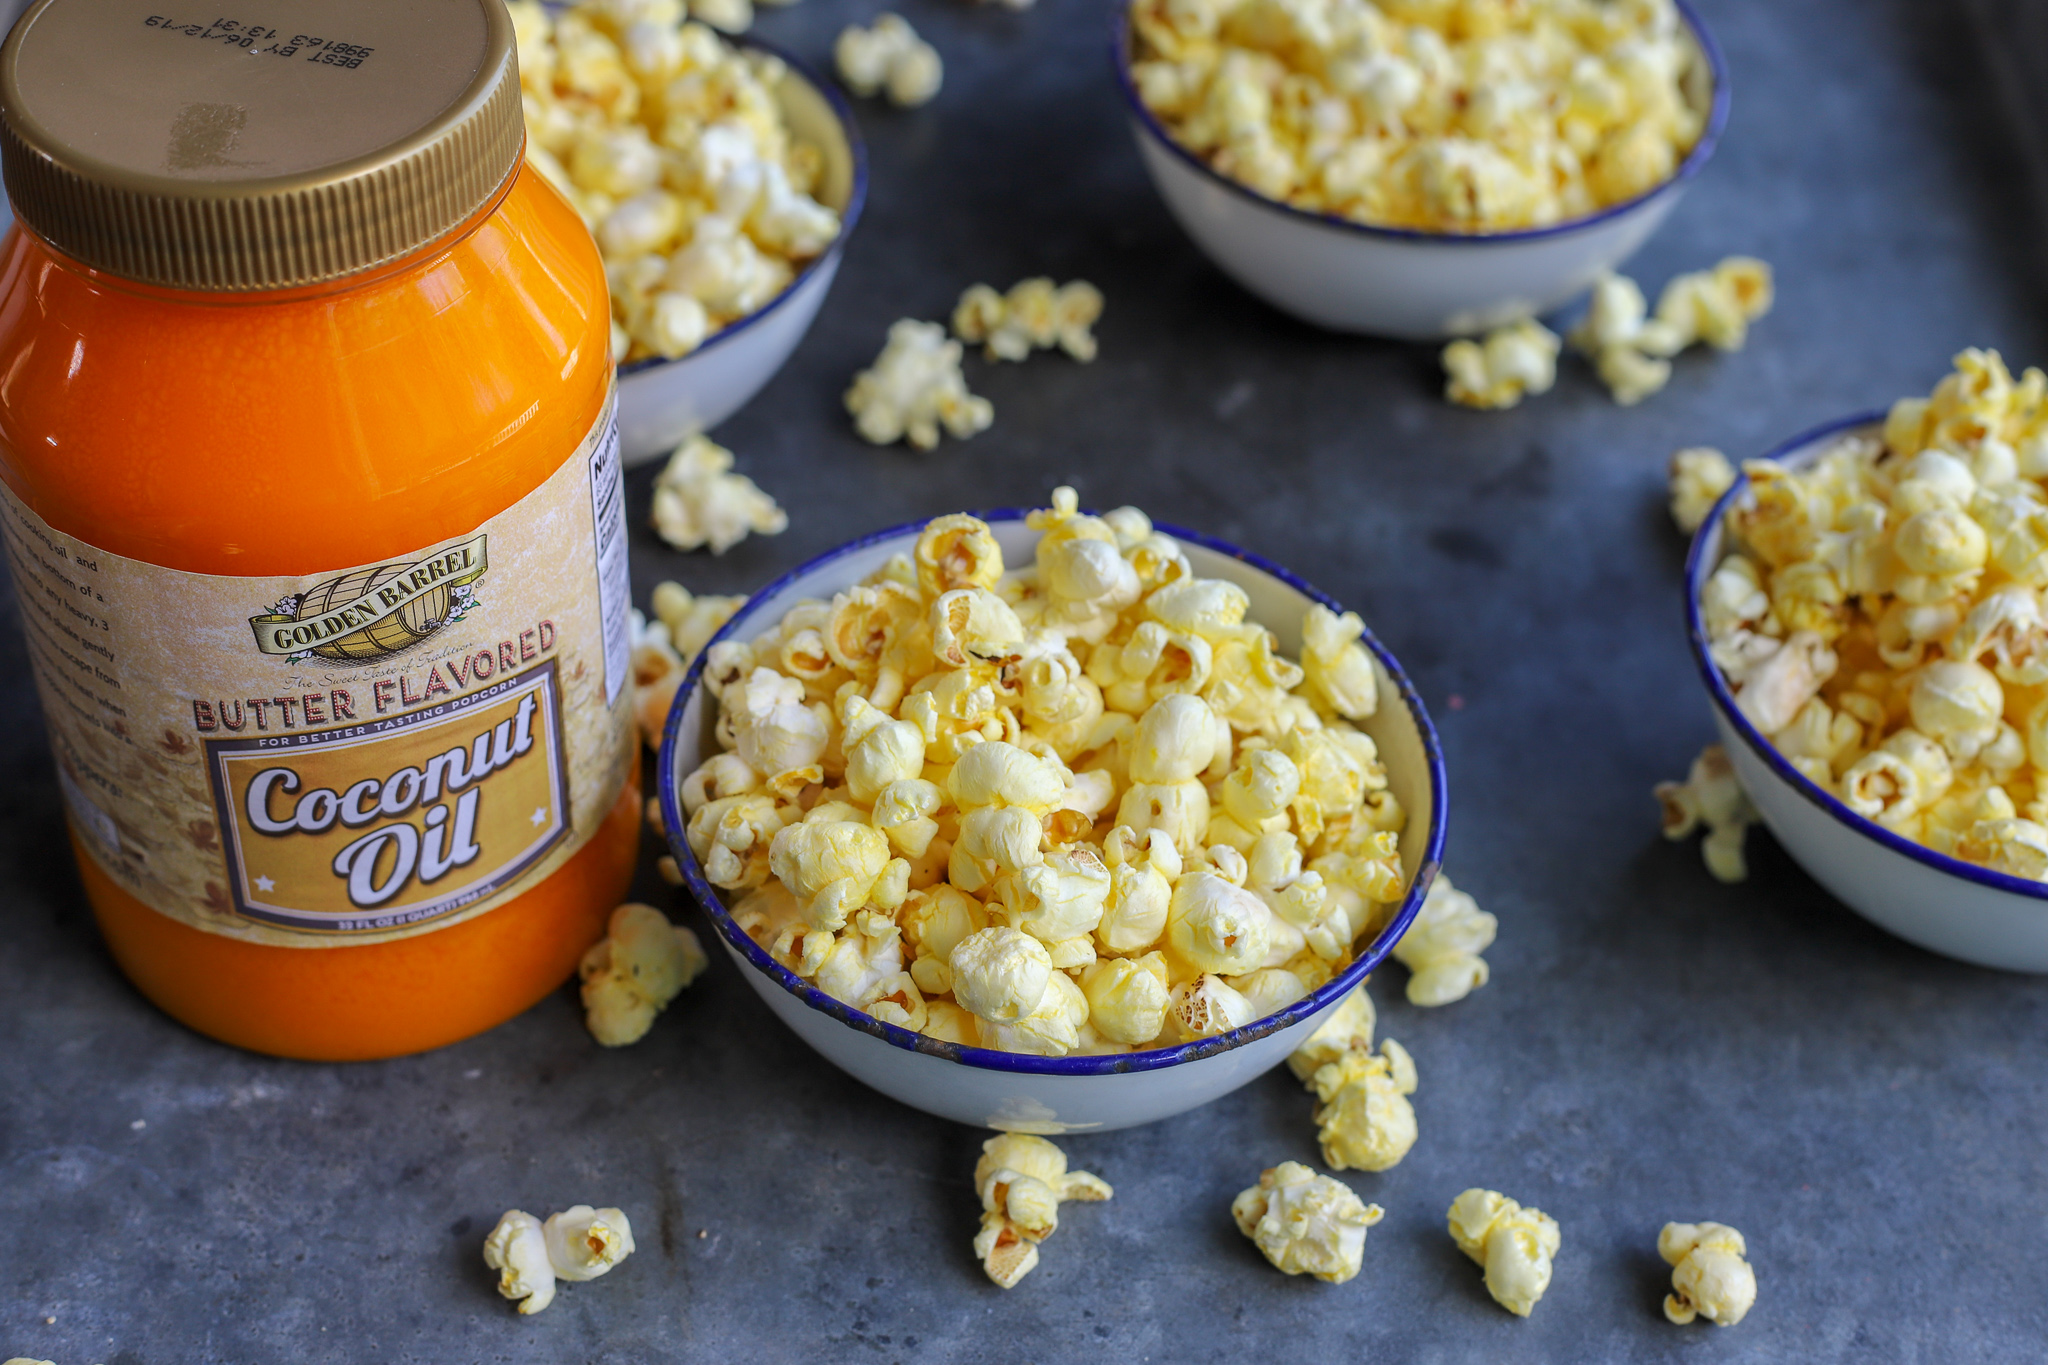 Homemade Butter Flavored Coconut Oil Popcorn Golden Barrel